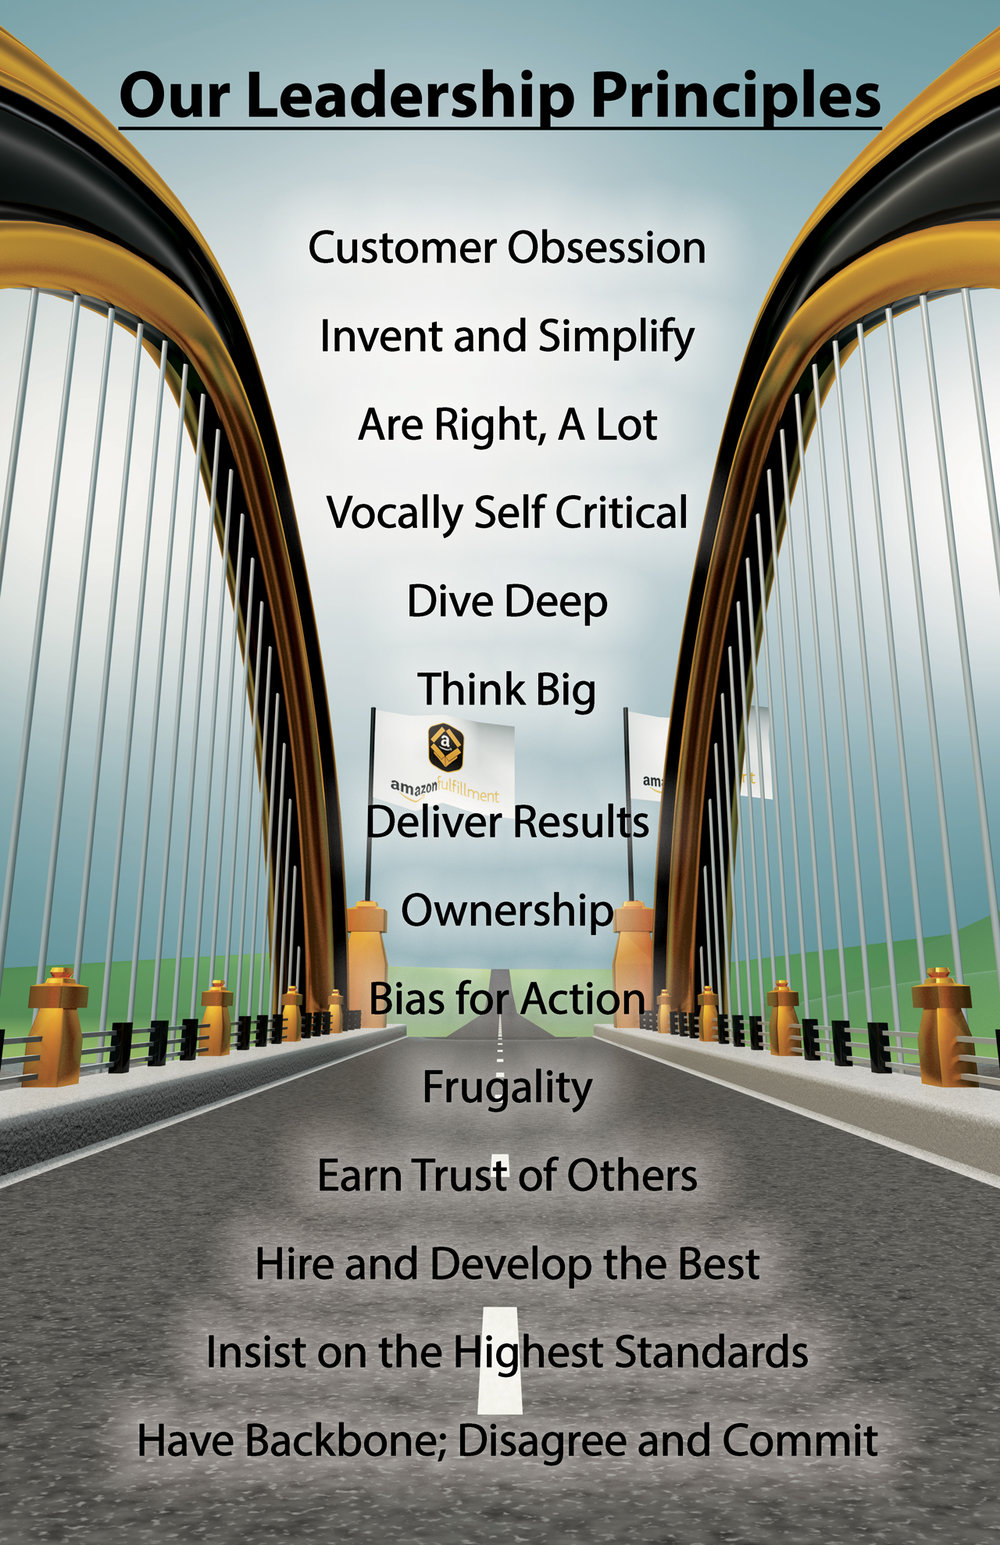 leadership_bridge_01_web.jpg